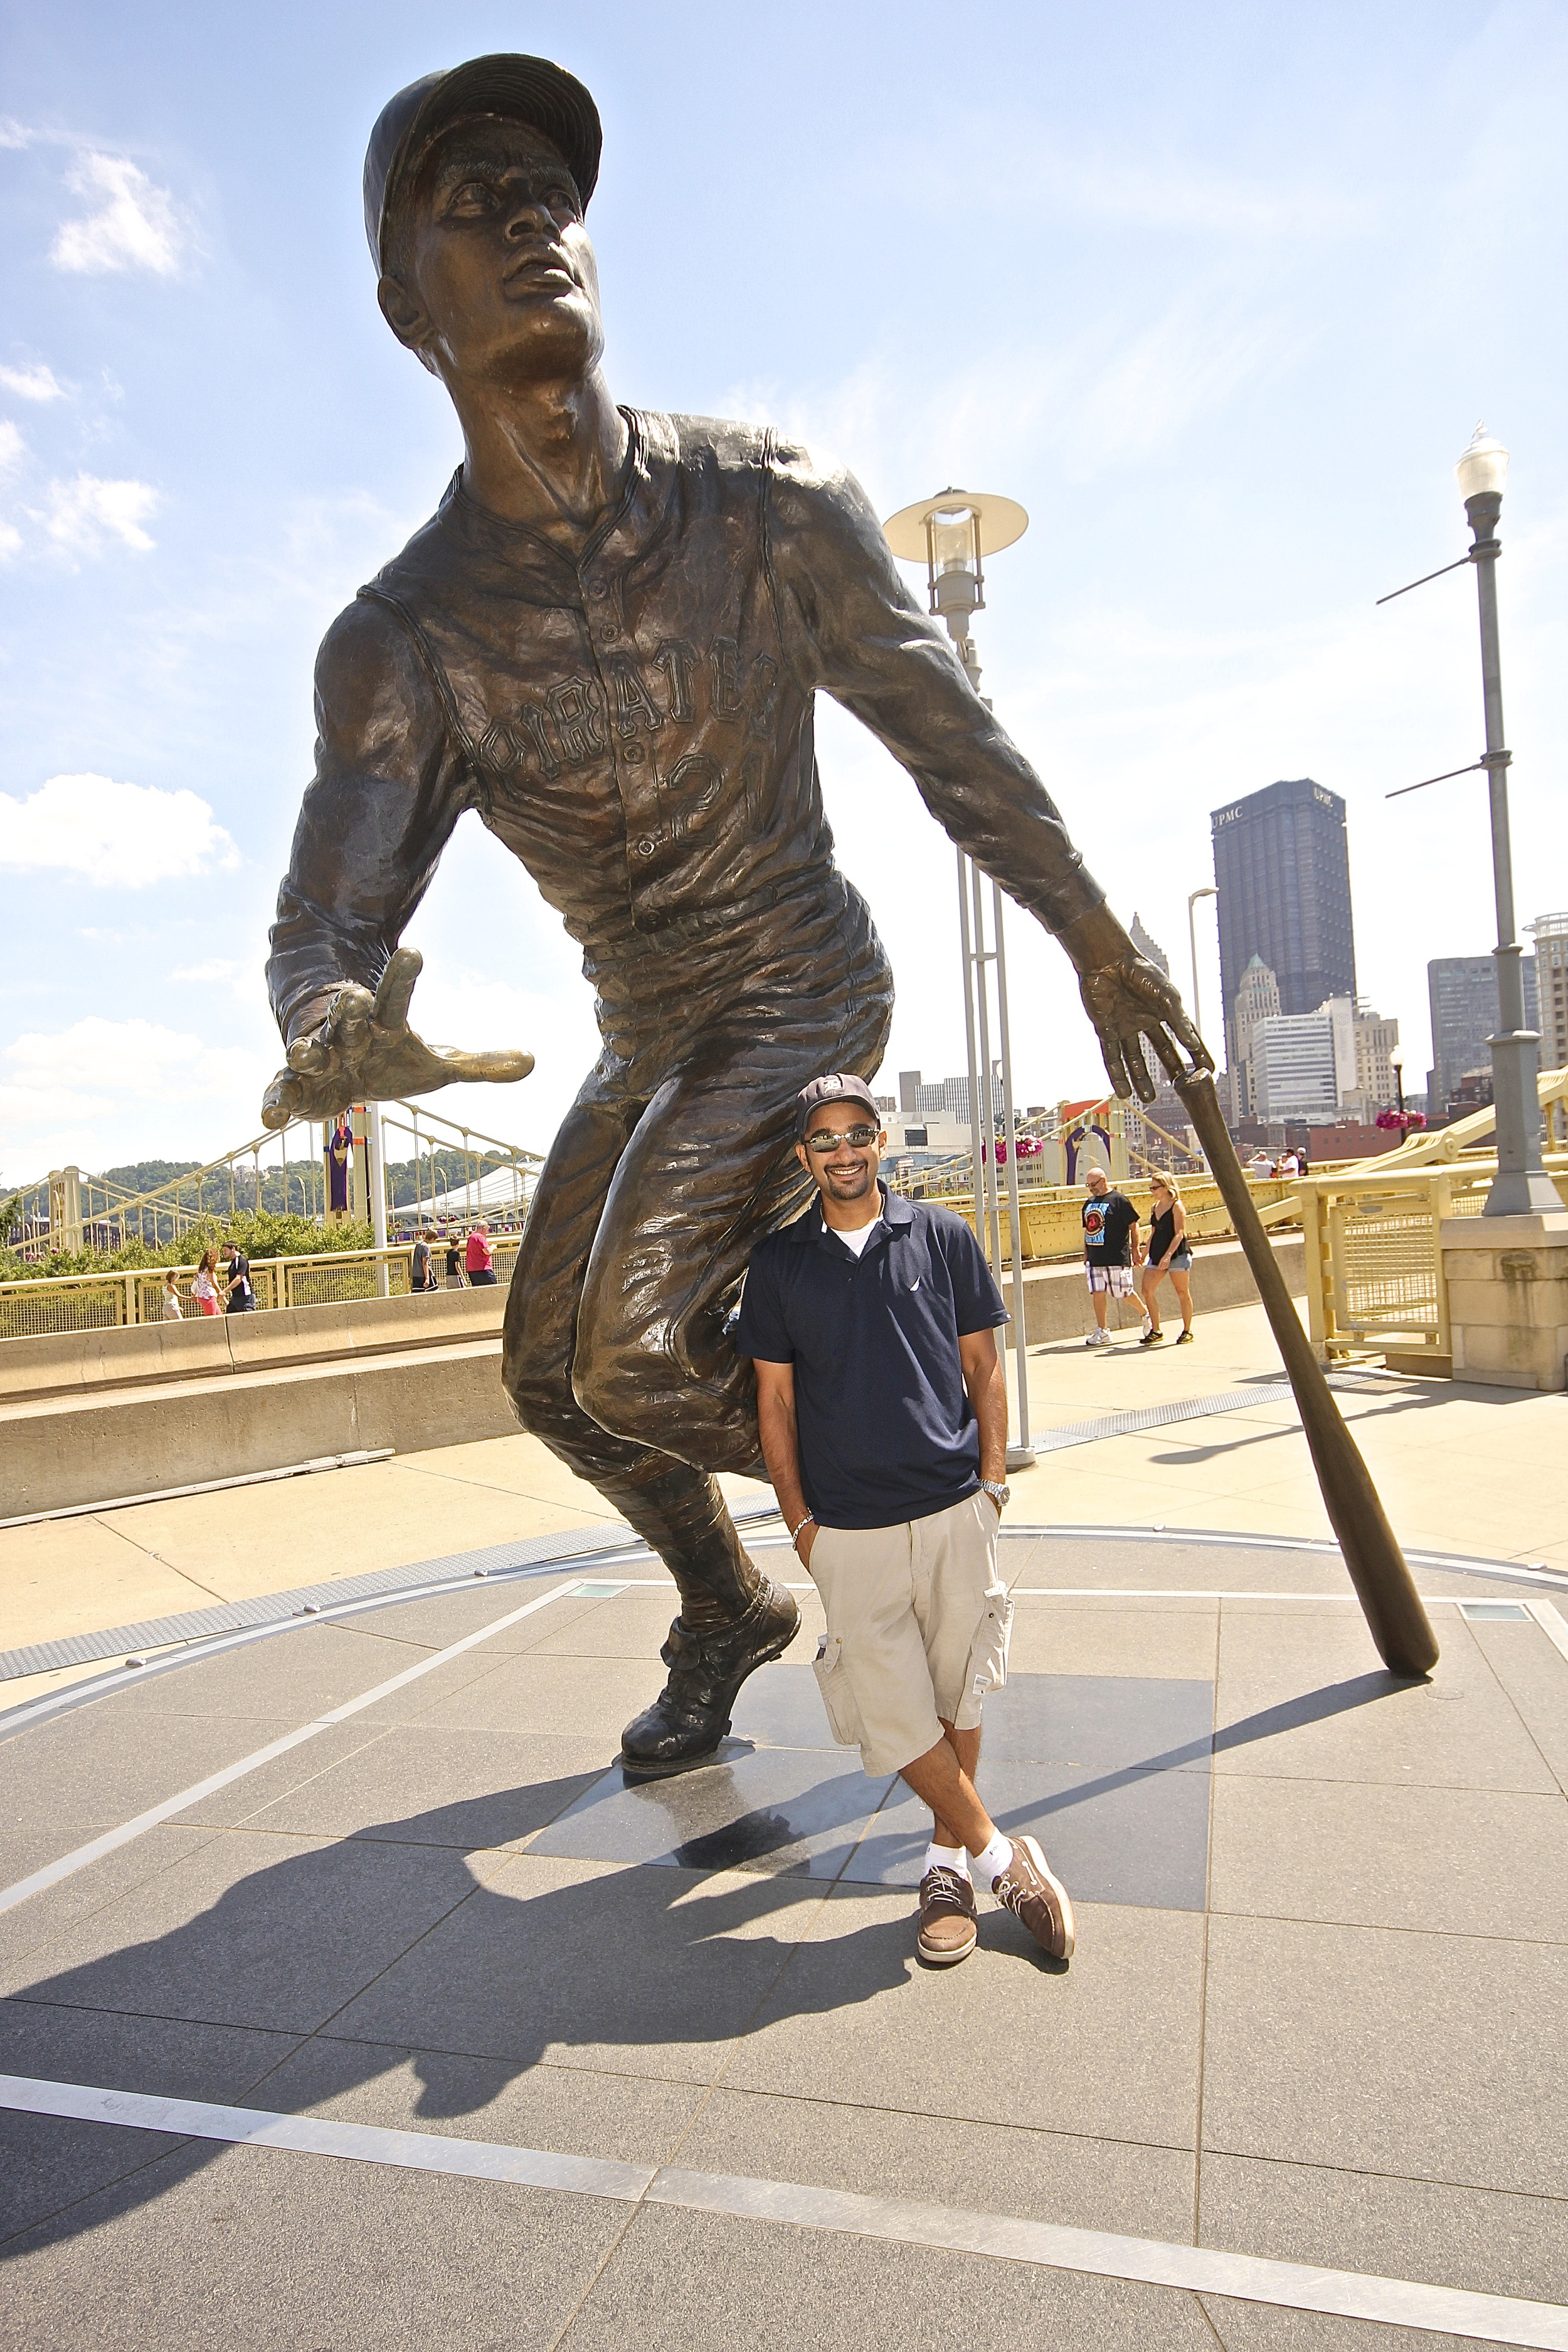 Me and Roberto Clemente